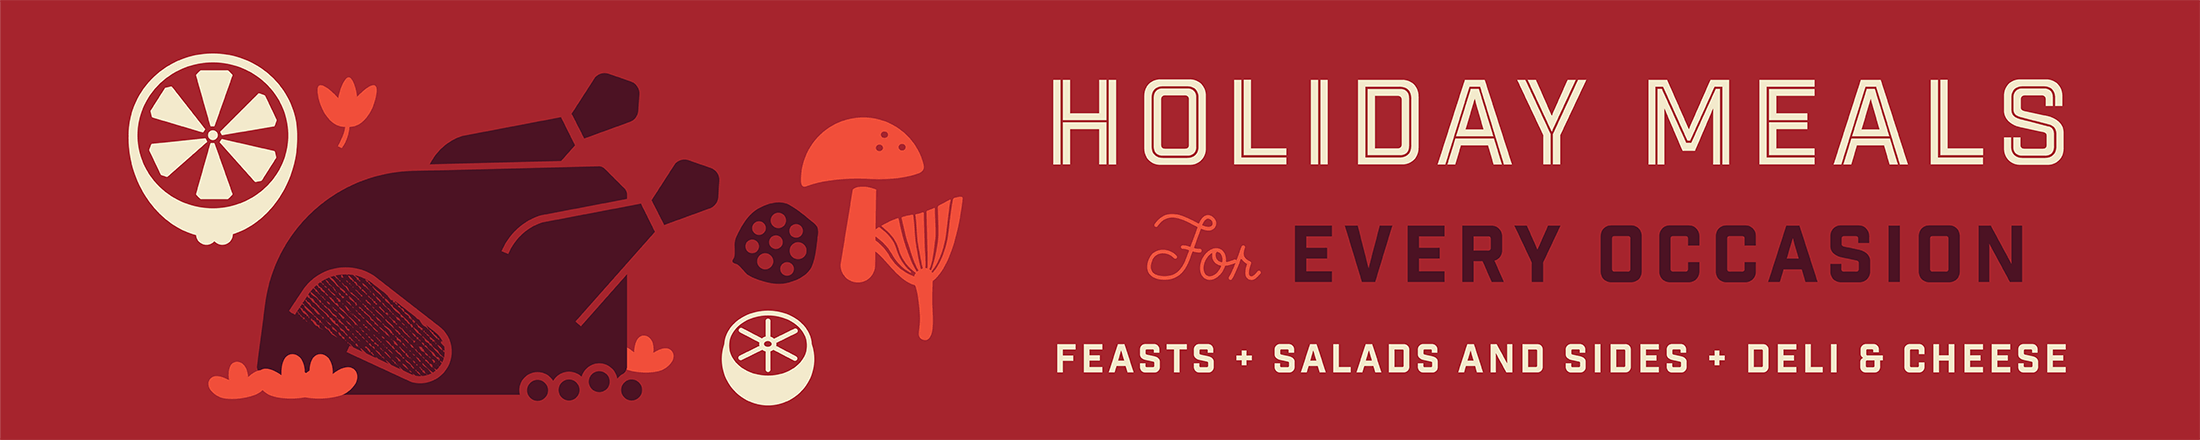 Gus's Market 2019 Holiday Meals Banner